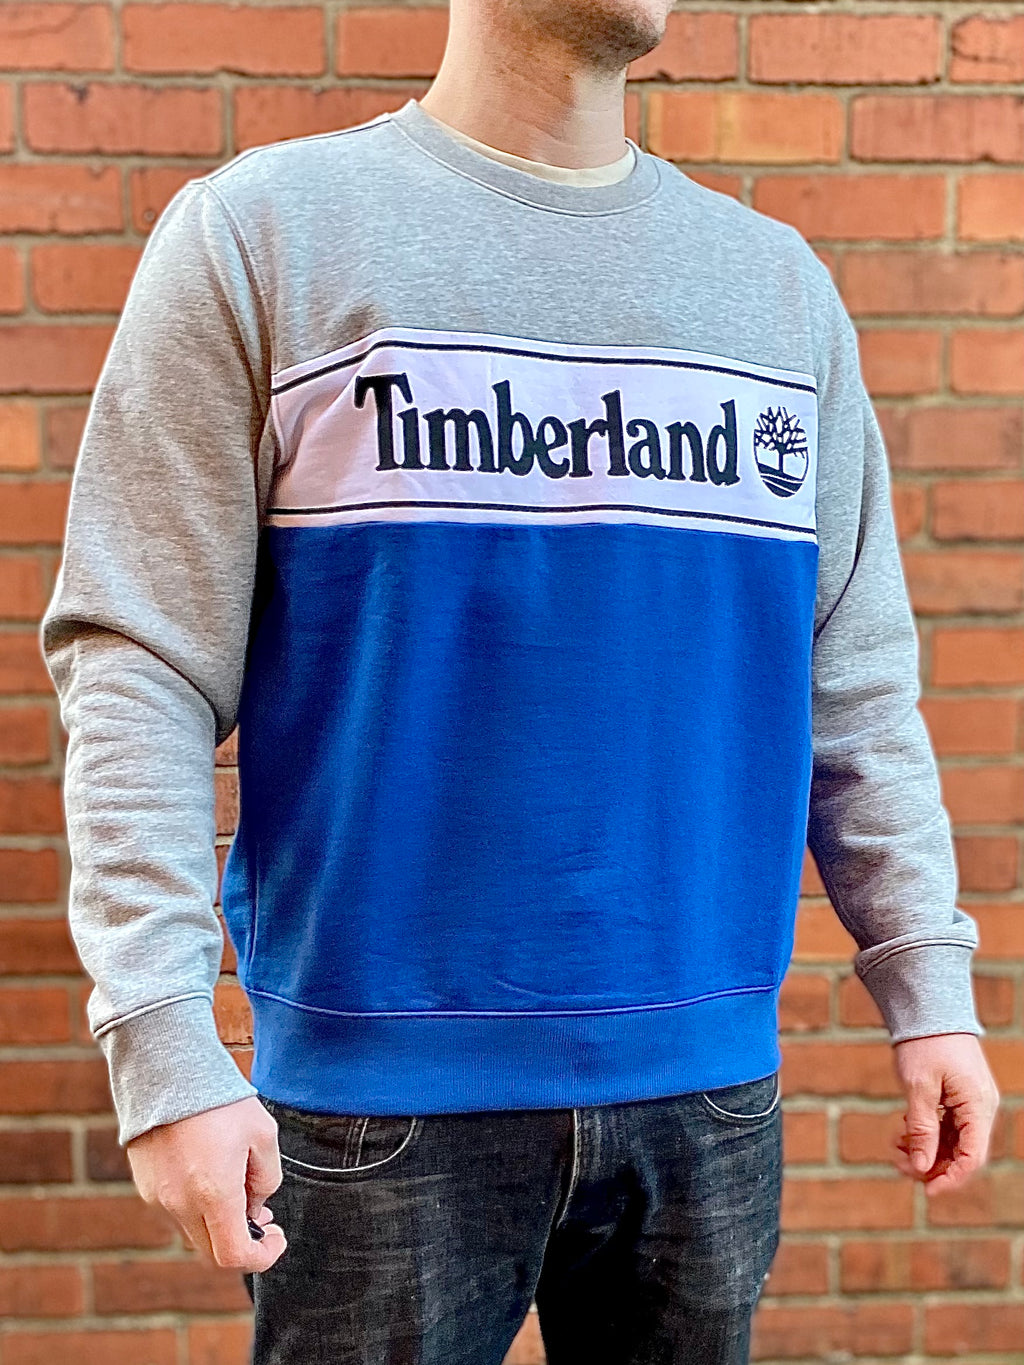 Grey and blue, thick, round-neck Timberland jumper, with white band across the chest and large, spellout, navy Timberland lettering